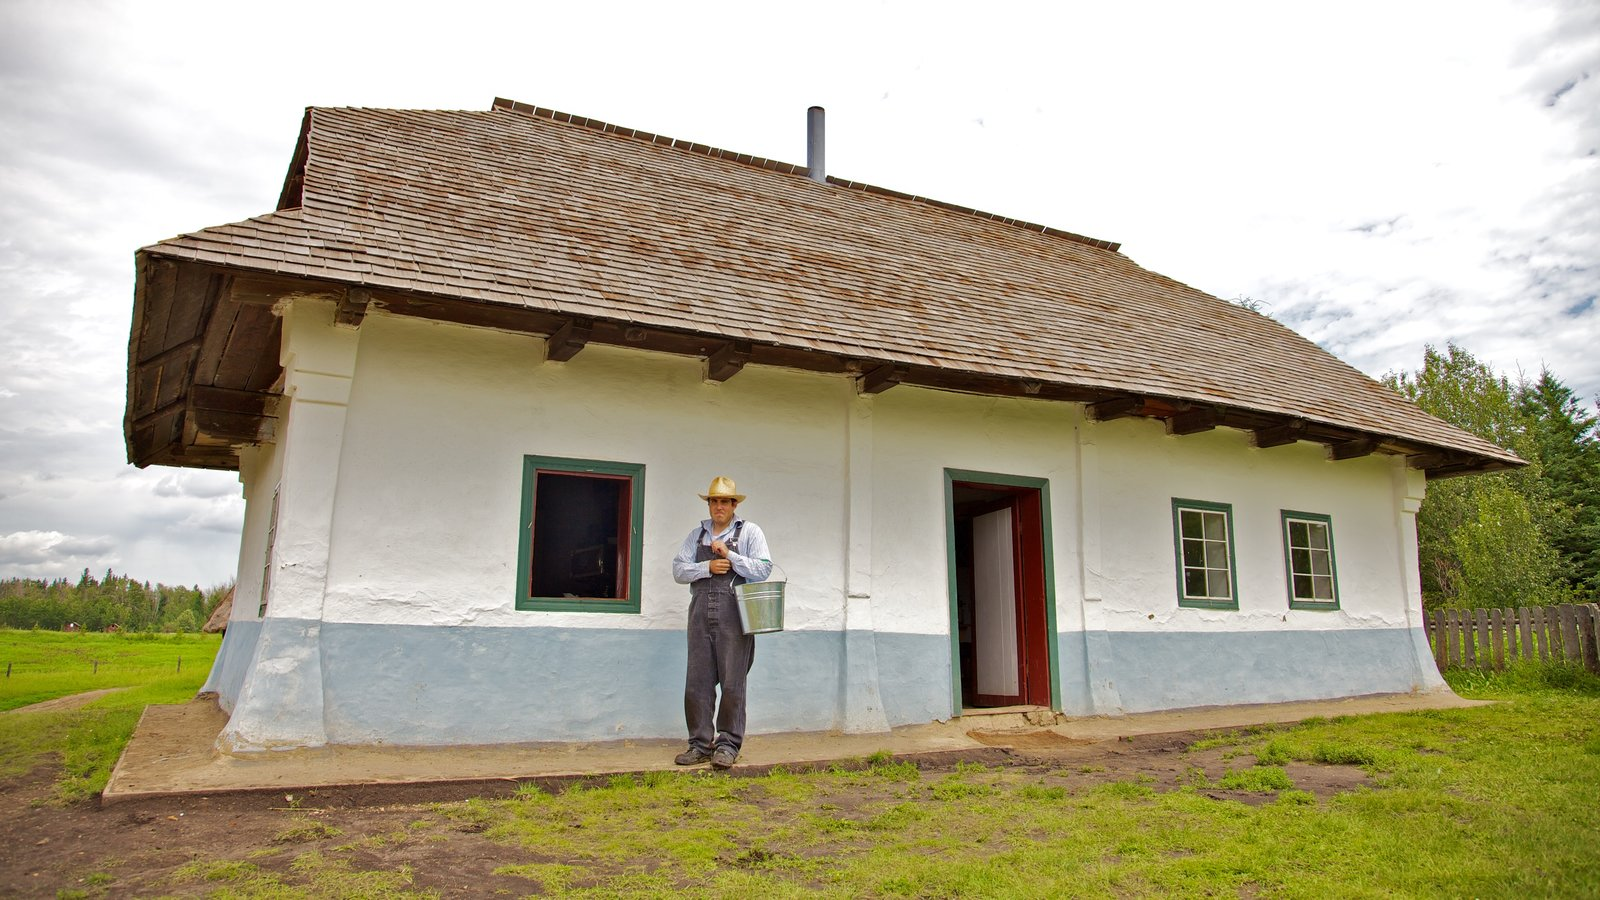 Ukrainian Cultural Heritage Village which includes a house and heritage architecture as well as an individual male